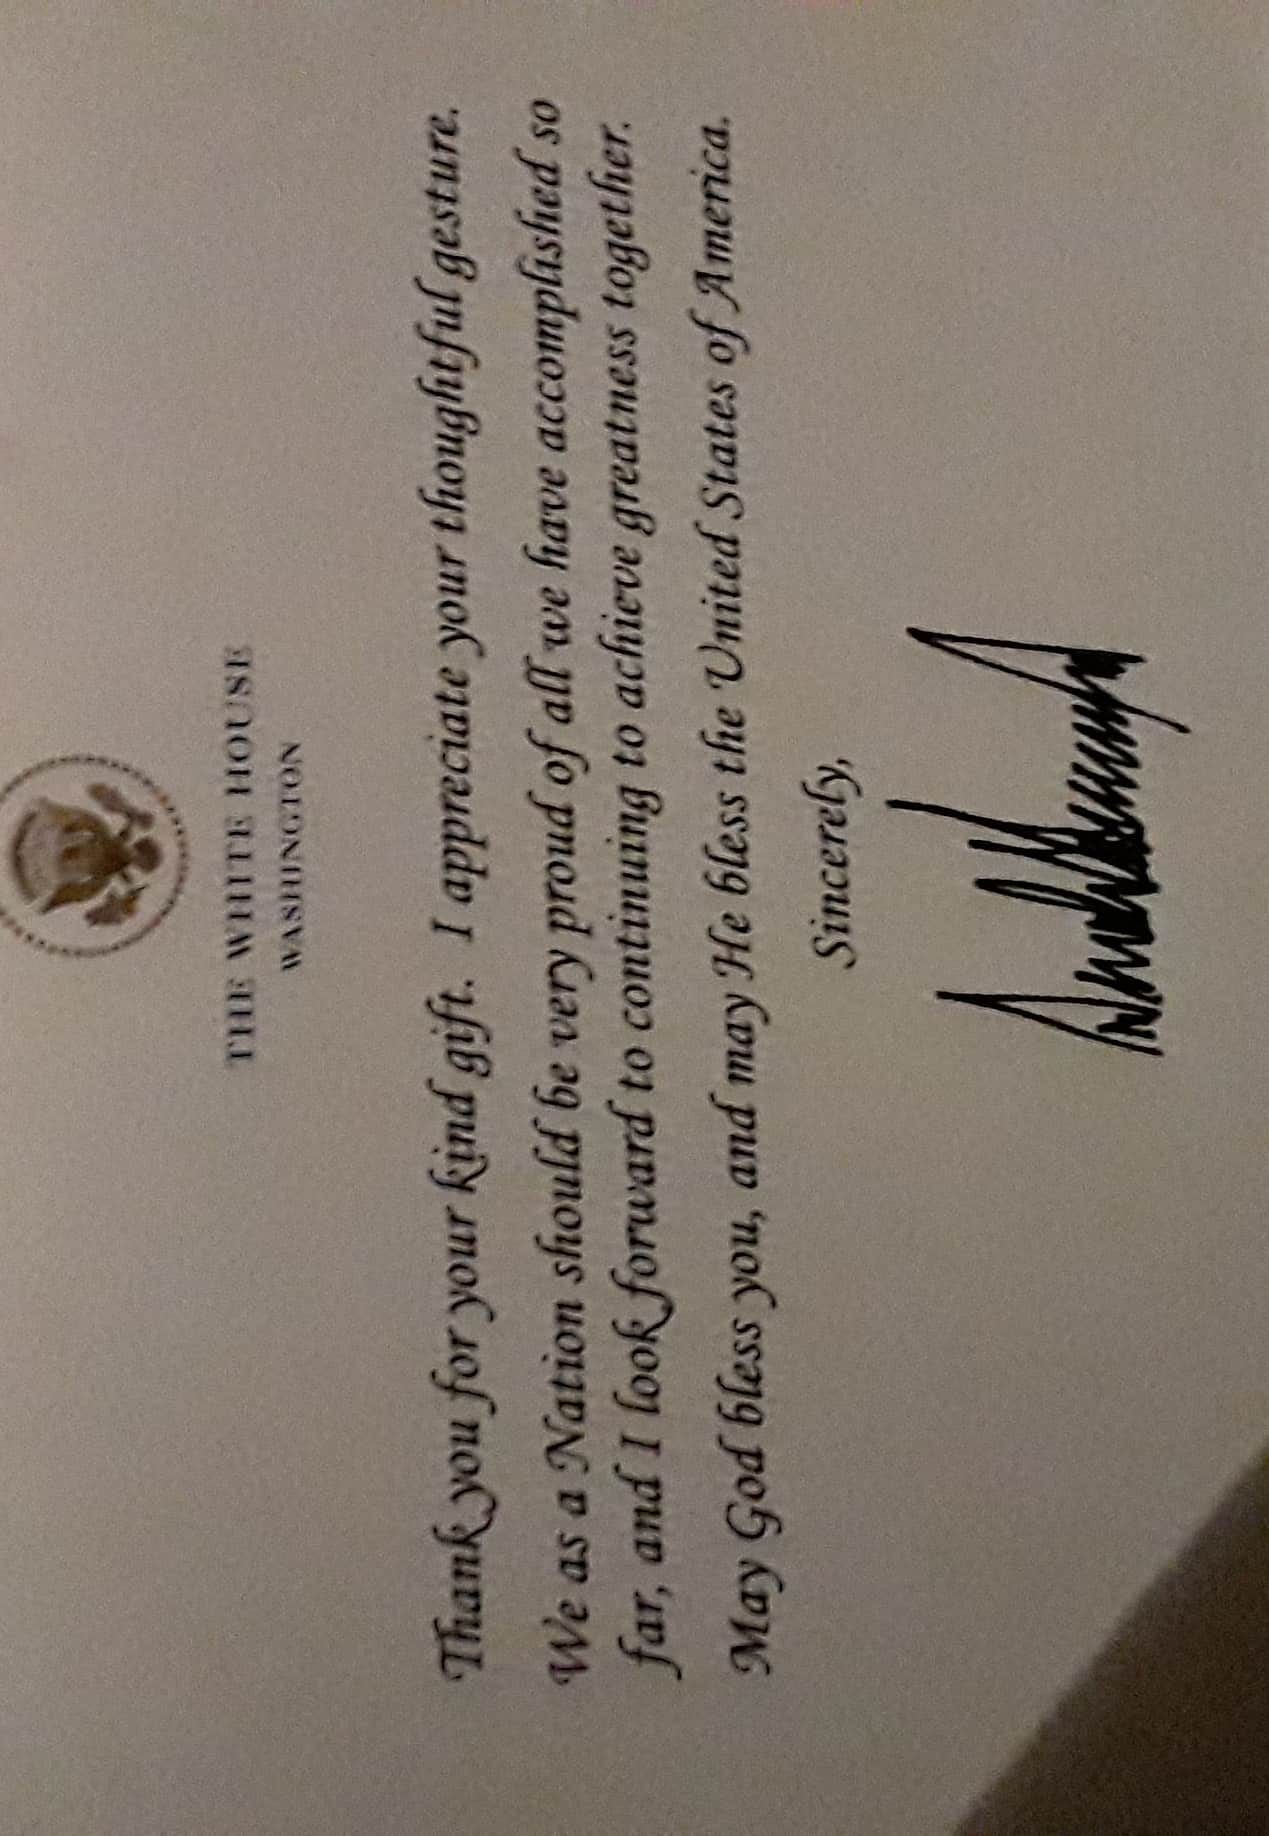 I received a POSTCARD from the WHITEHOUSE thanking me for my gift (I sent a copy of my book to Presi